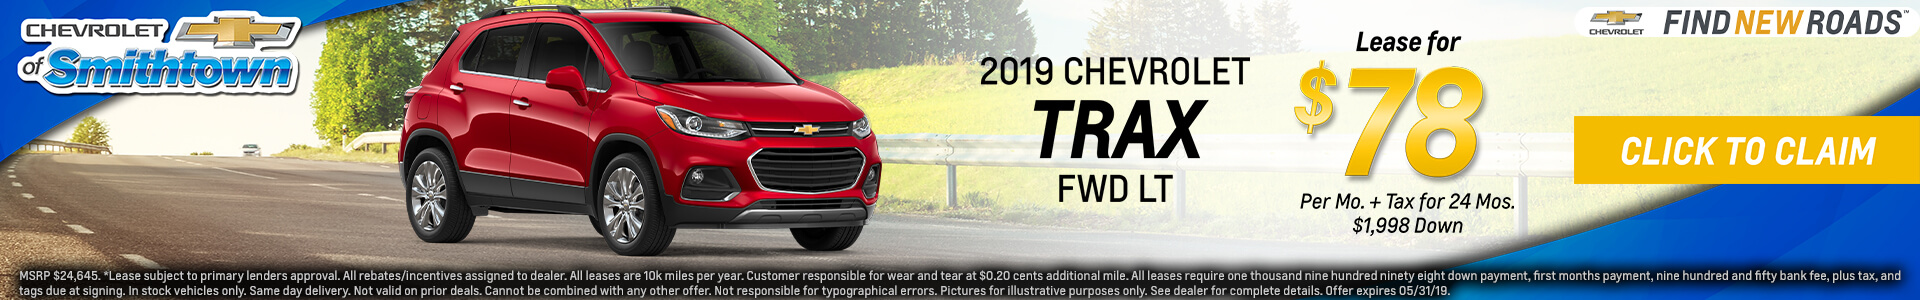 Chevrolet Trax $78 Lease